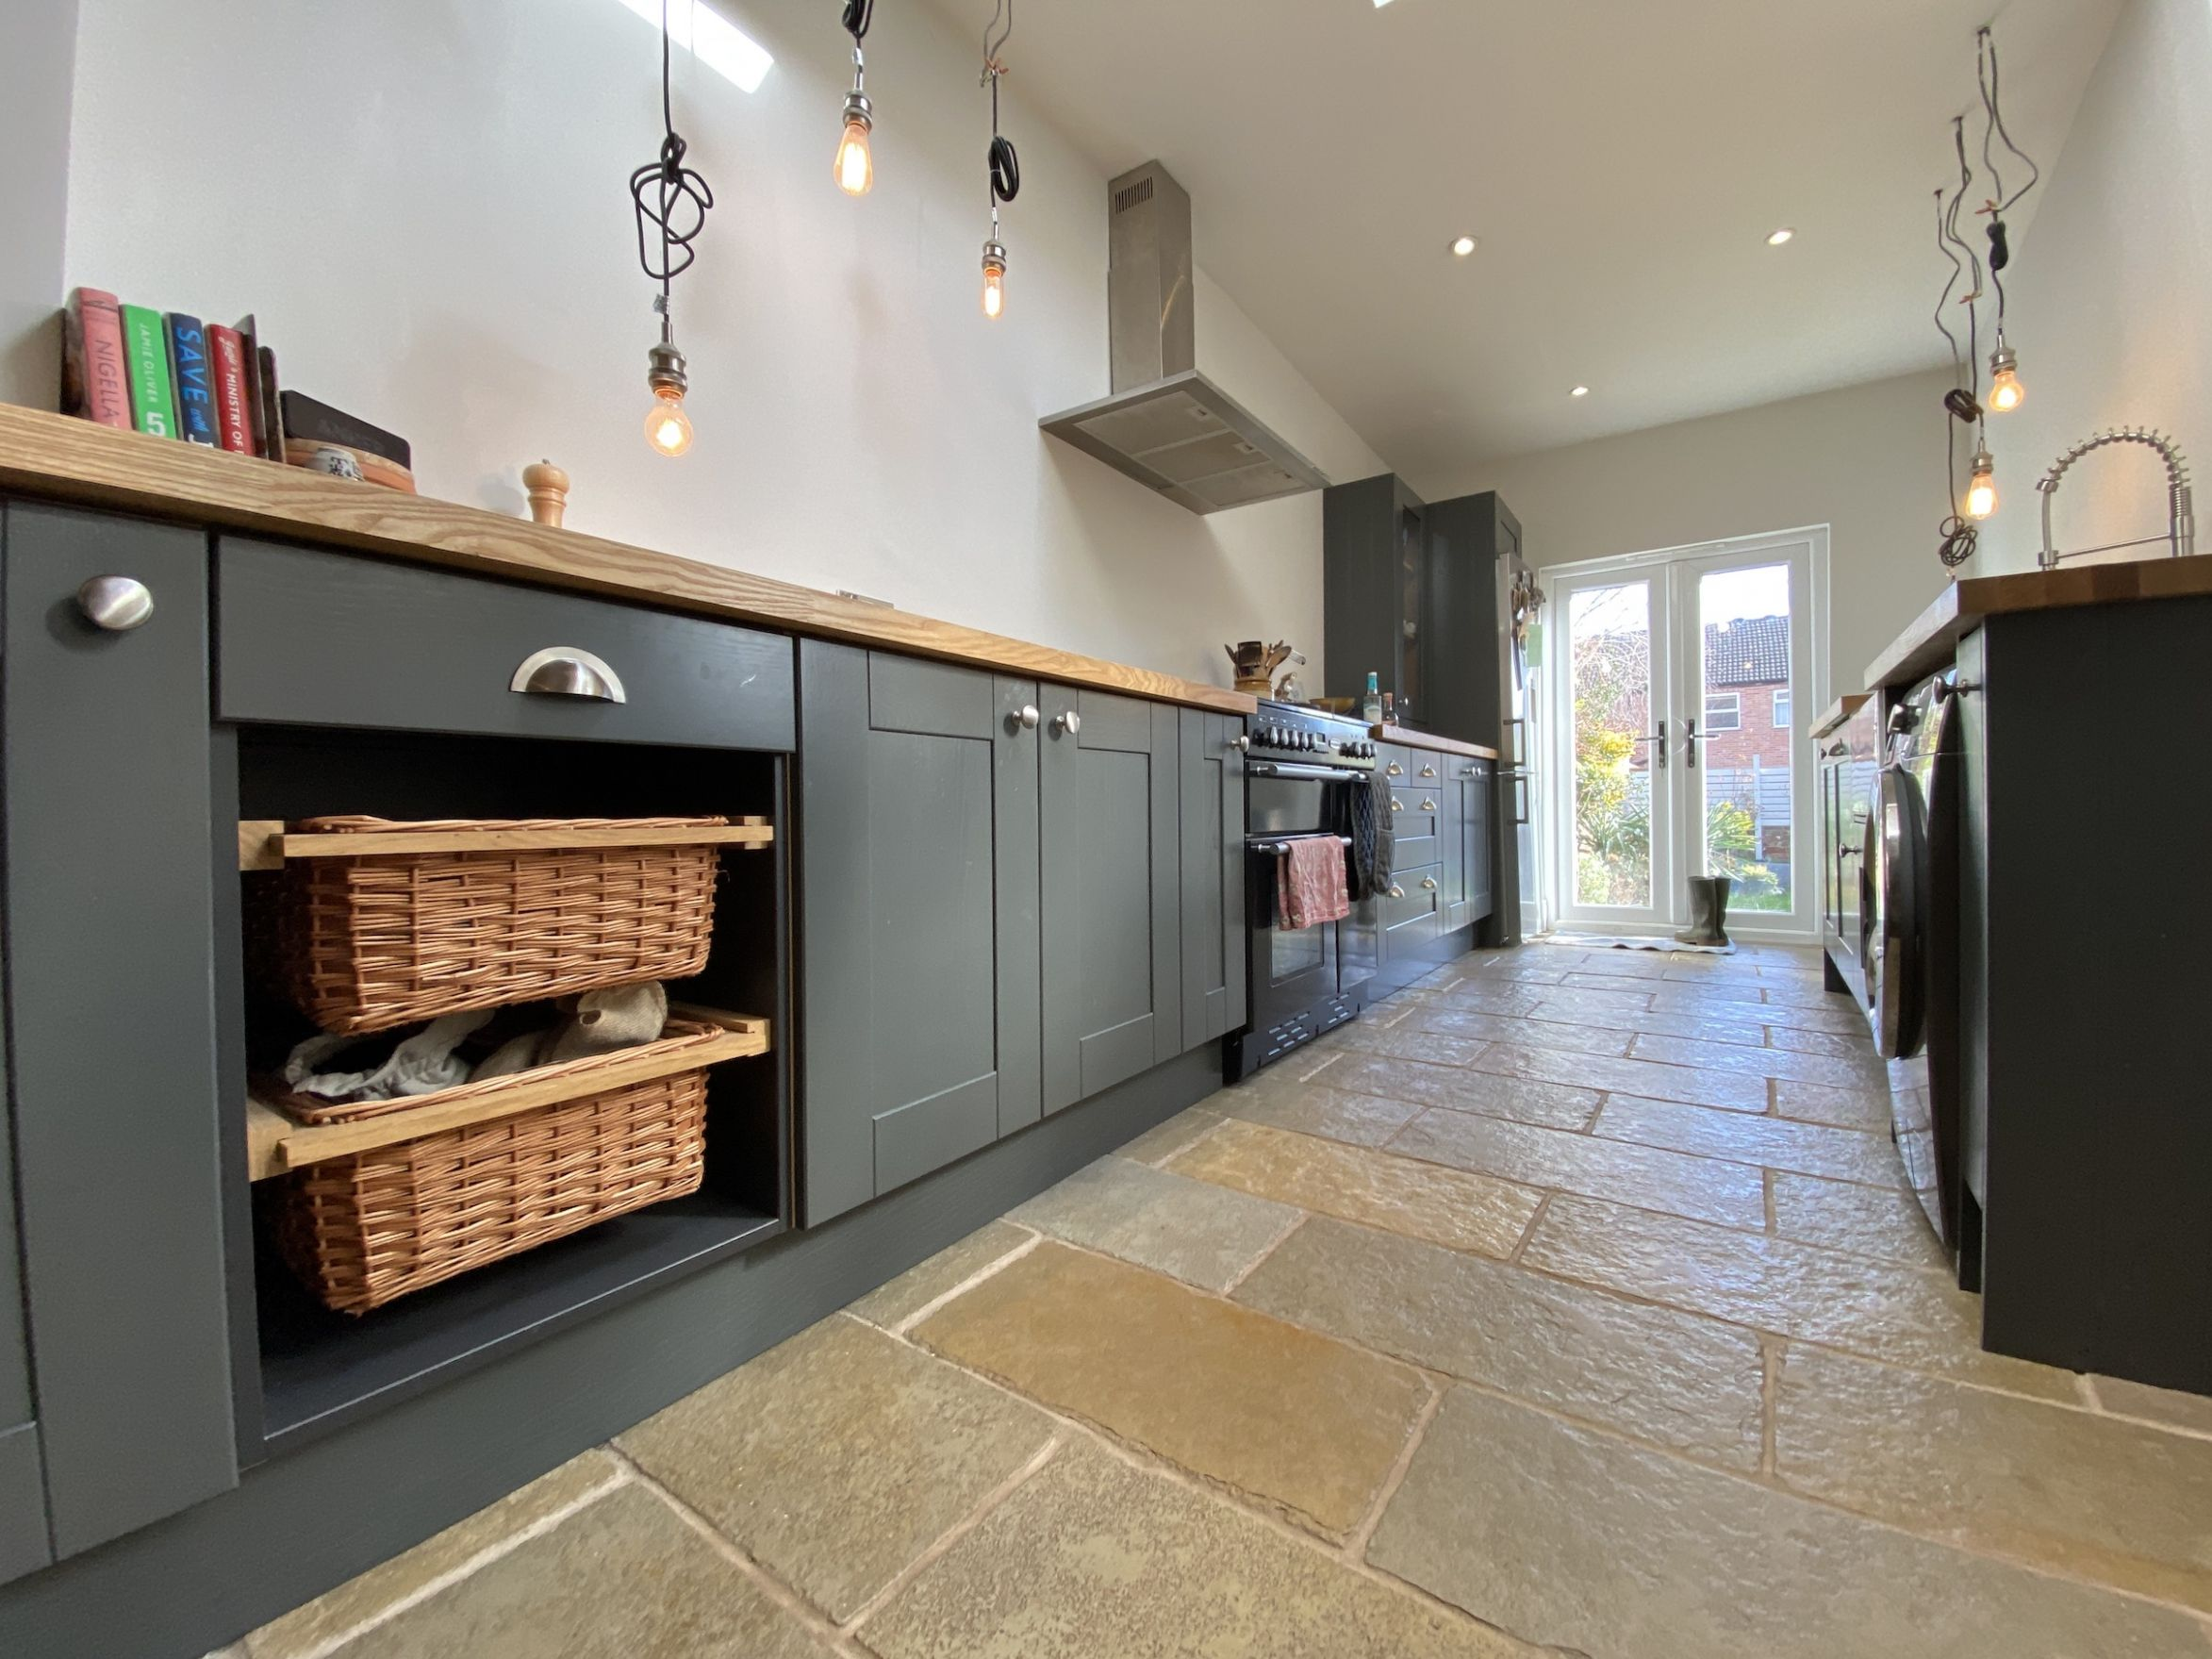 DIY Kitchens Review: Would We Recommend? - Kezzabeth | DIY ...